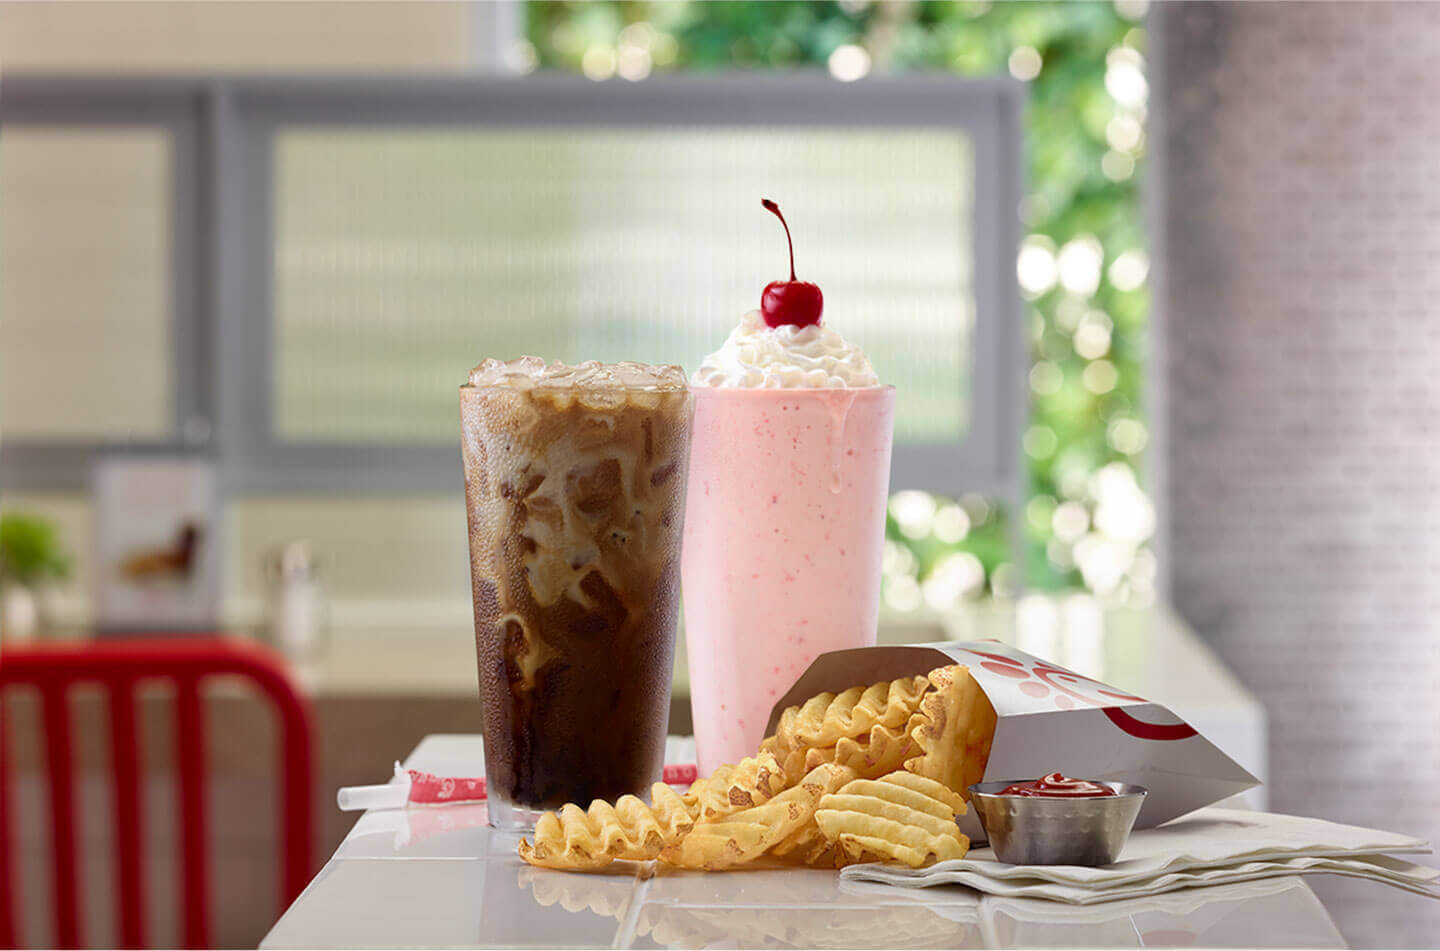 Strawberry milkshake, soda, and french fries